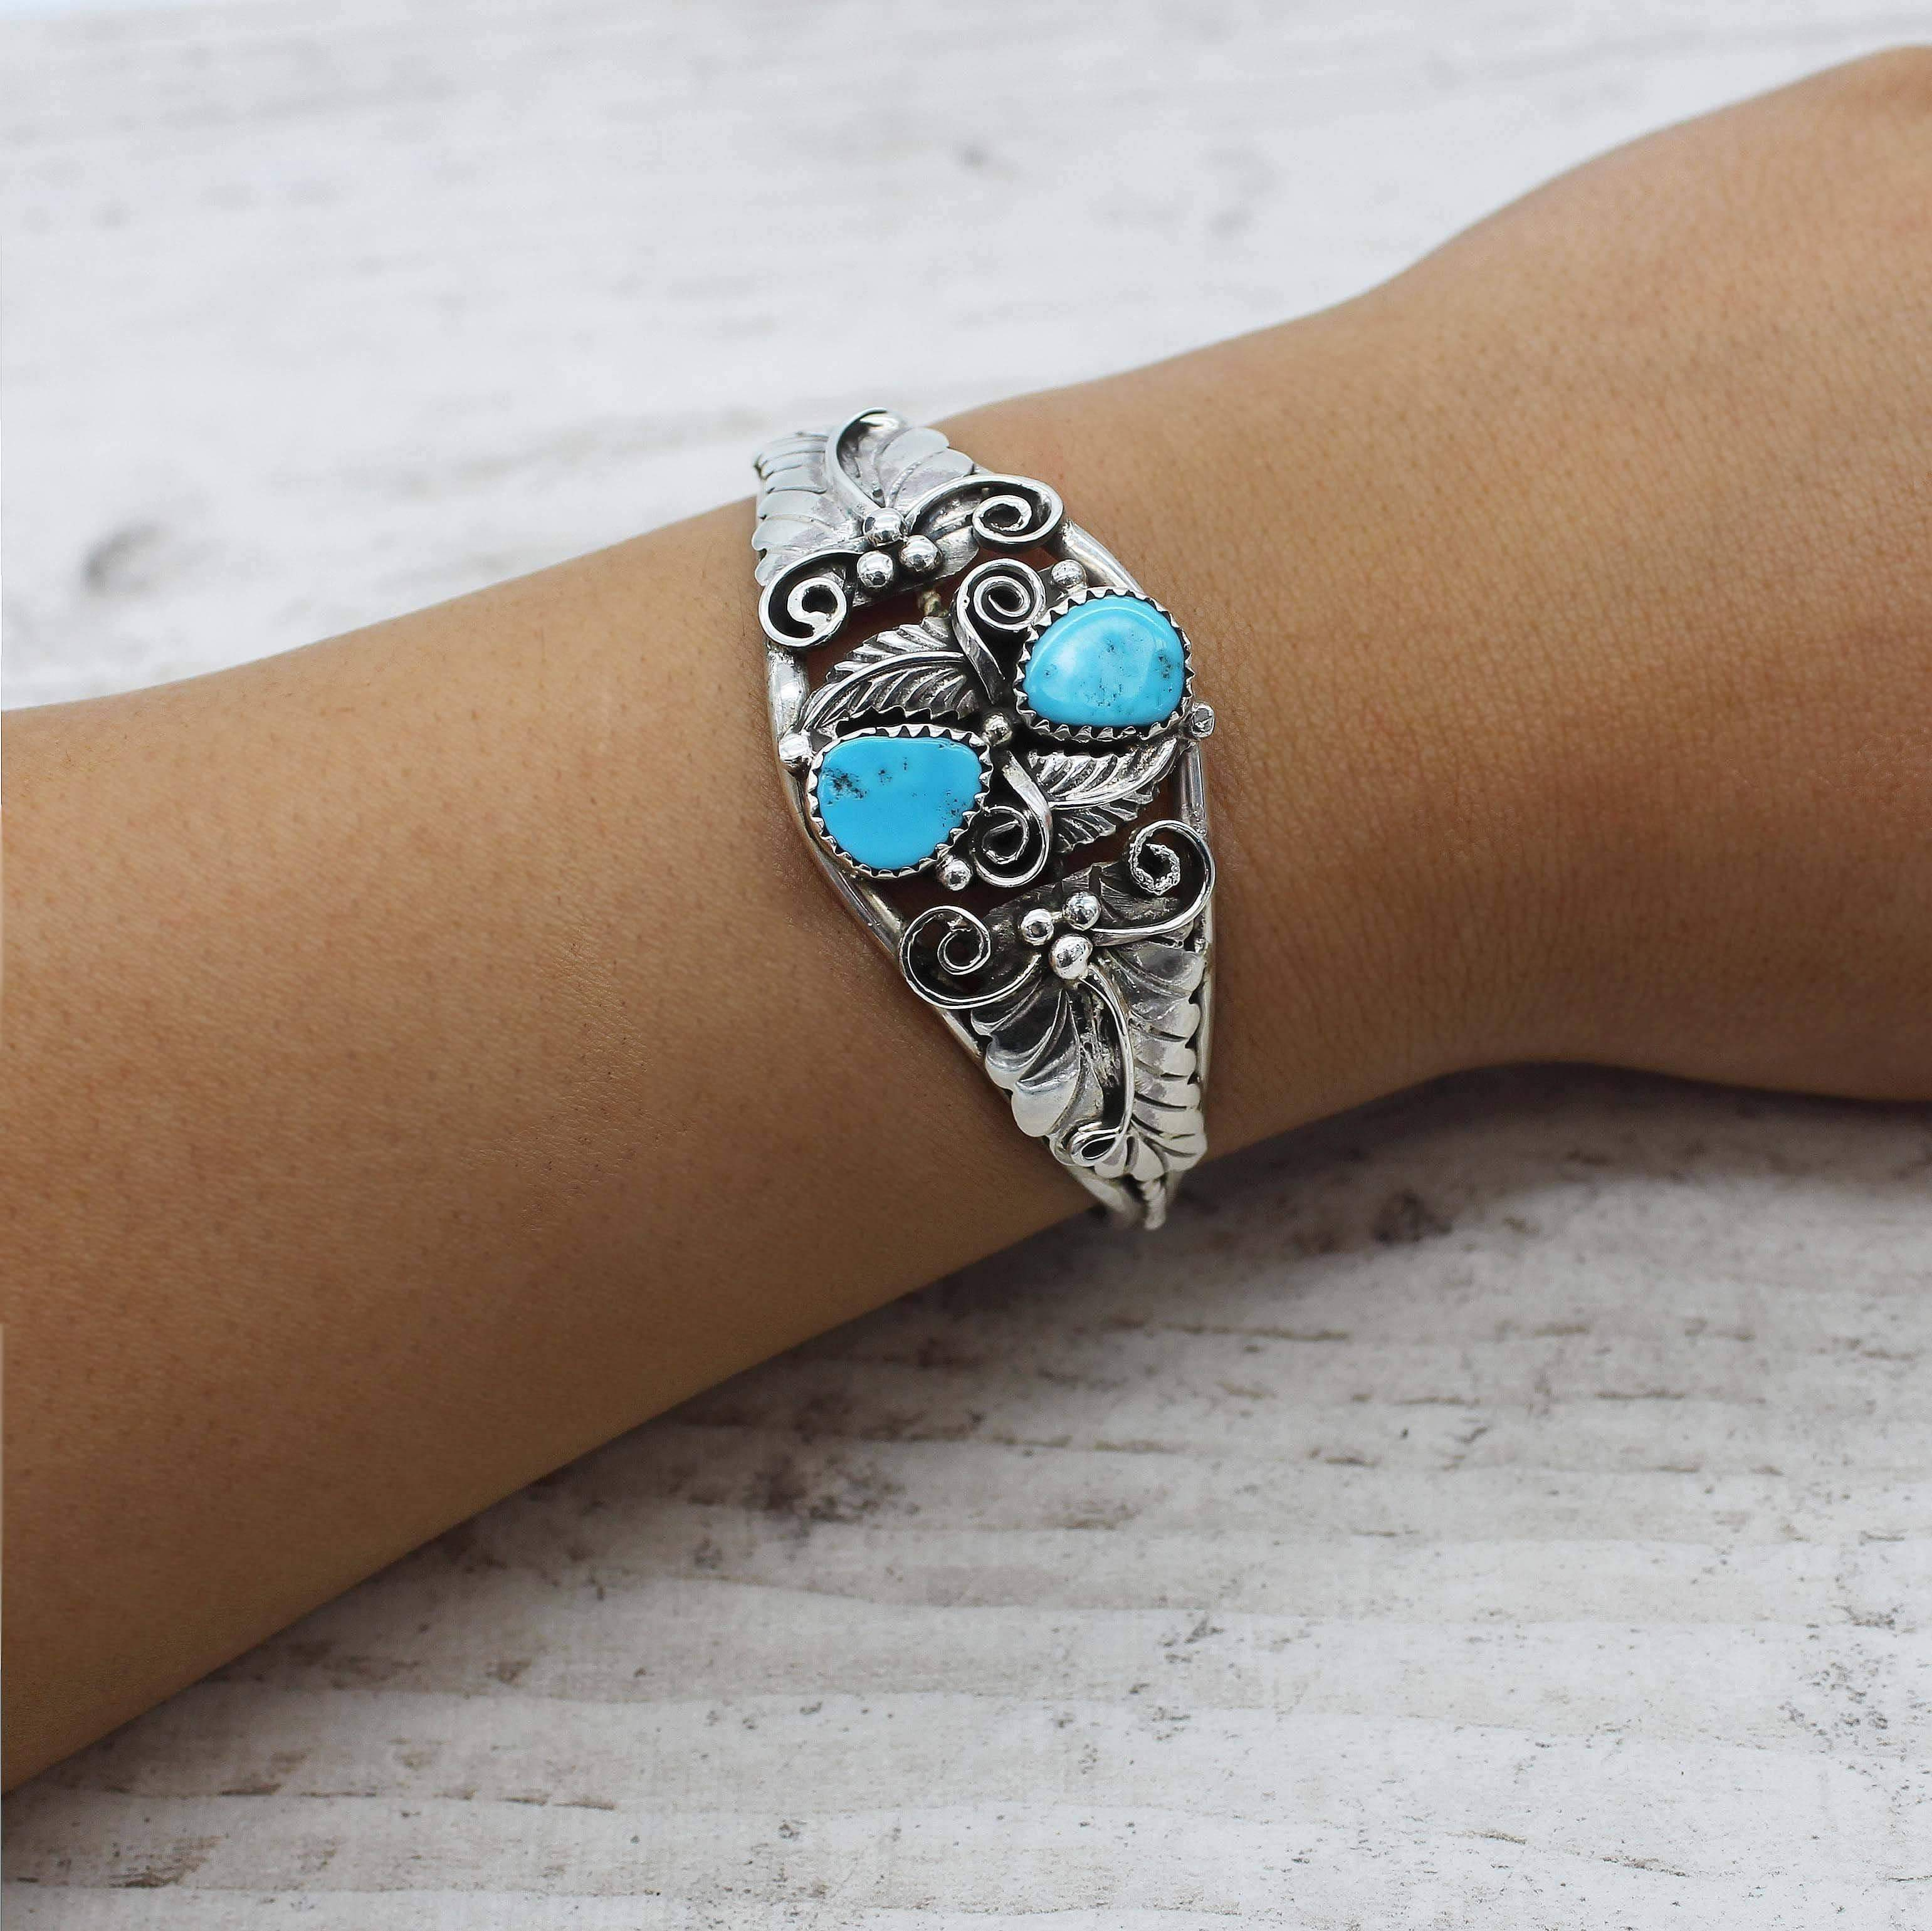 Navajo Sleeping Beauty Turquoise Cuff - www.indieandharper.com - bohemian gypsy festival jewellery boho jewelry - indie and harper